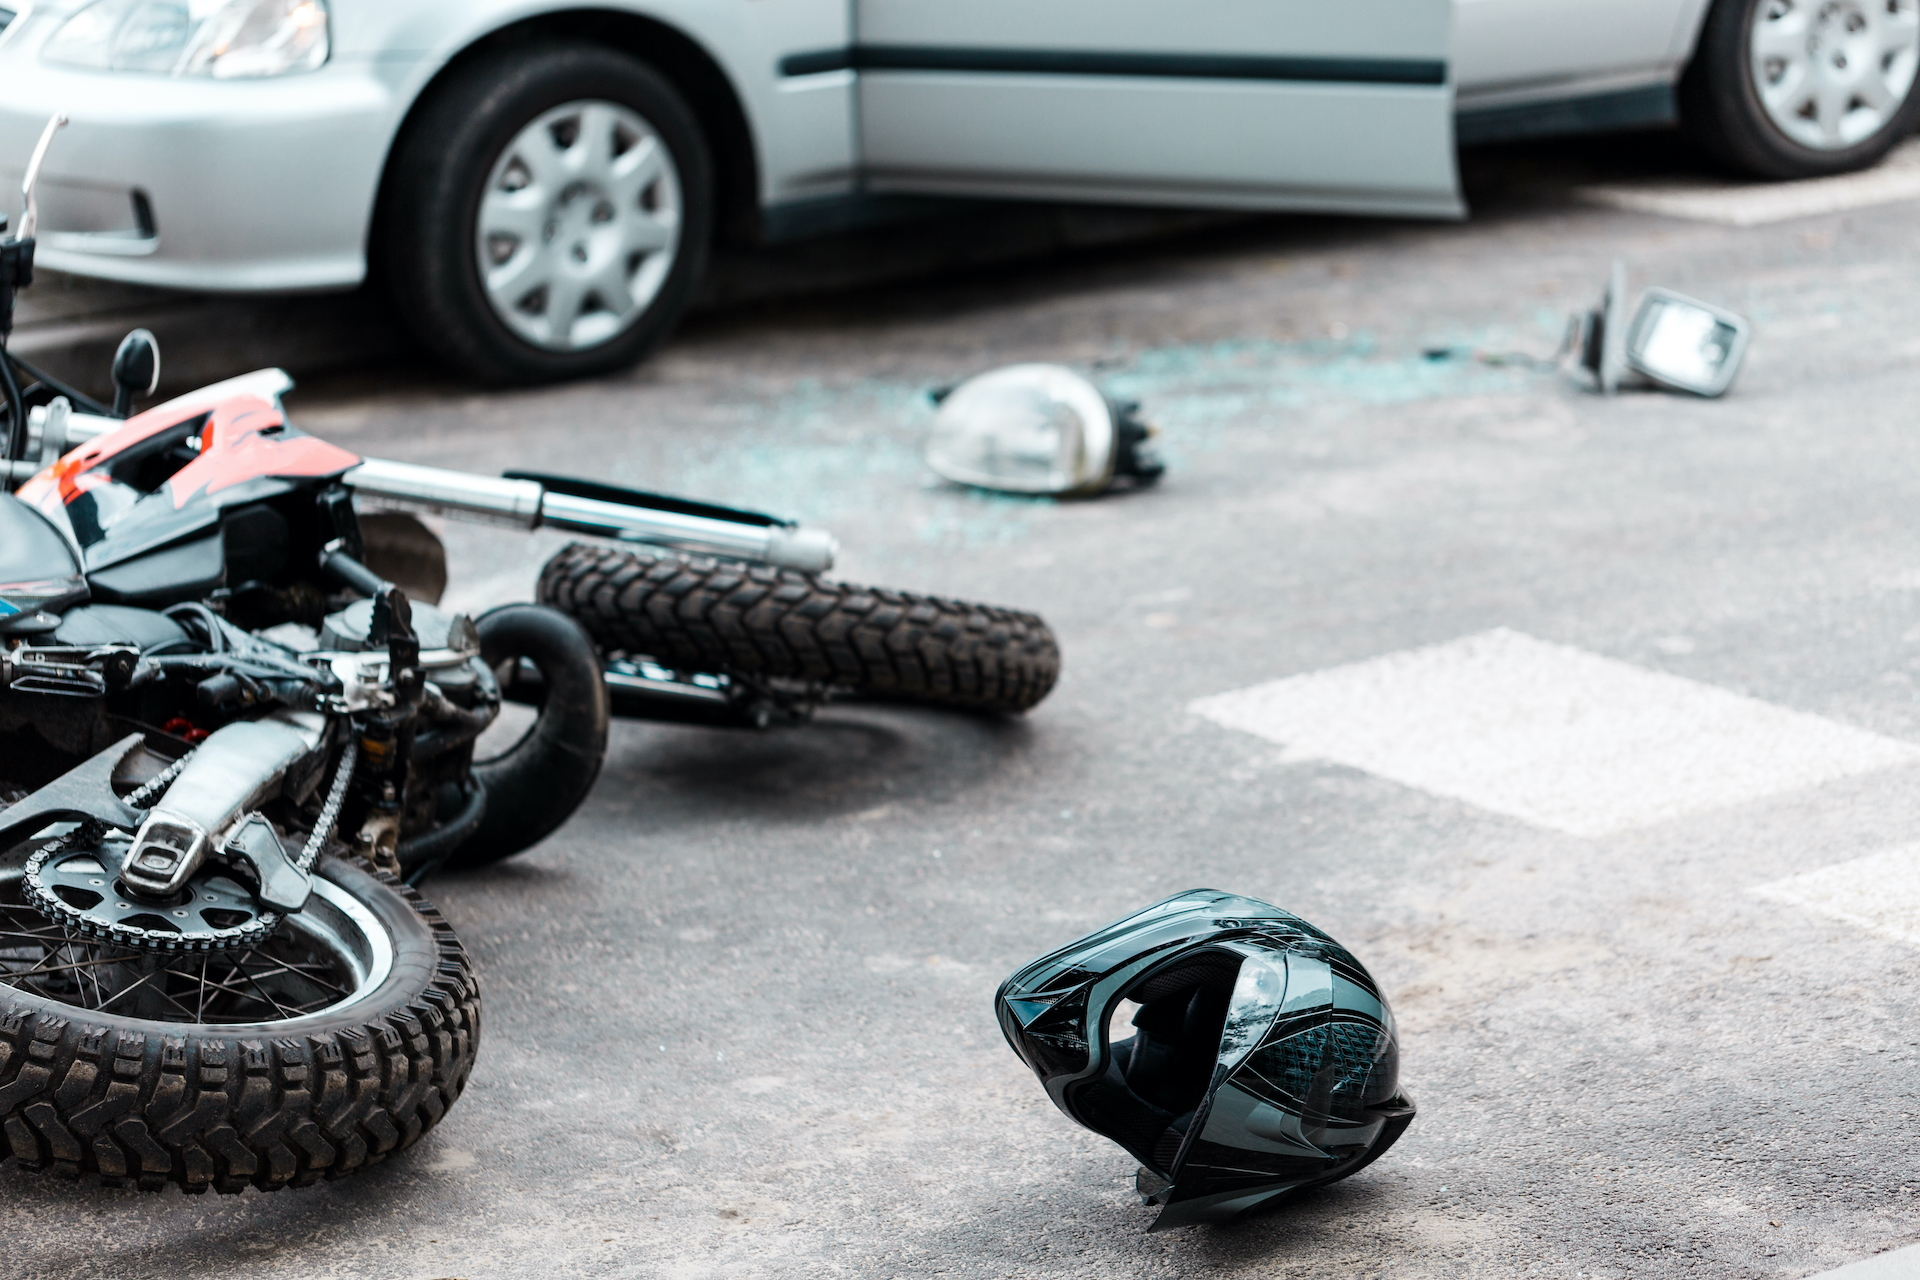 motorcycle accident - Personal Injury Attorney in Nashville - Wrongful Death Attorney, Truck Accident Lawyer, Car Accident Lawyer, and more | Meyers Injury Law